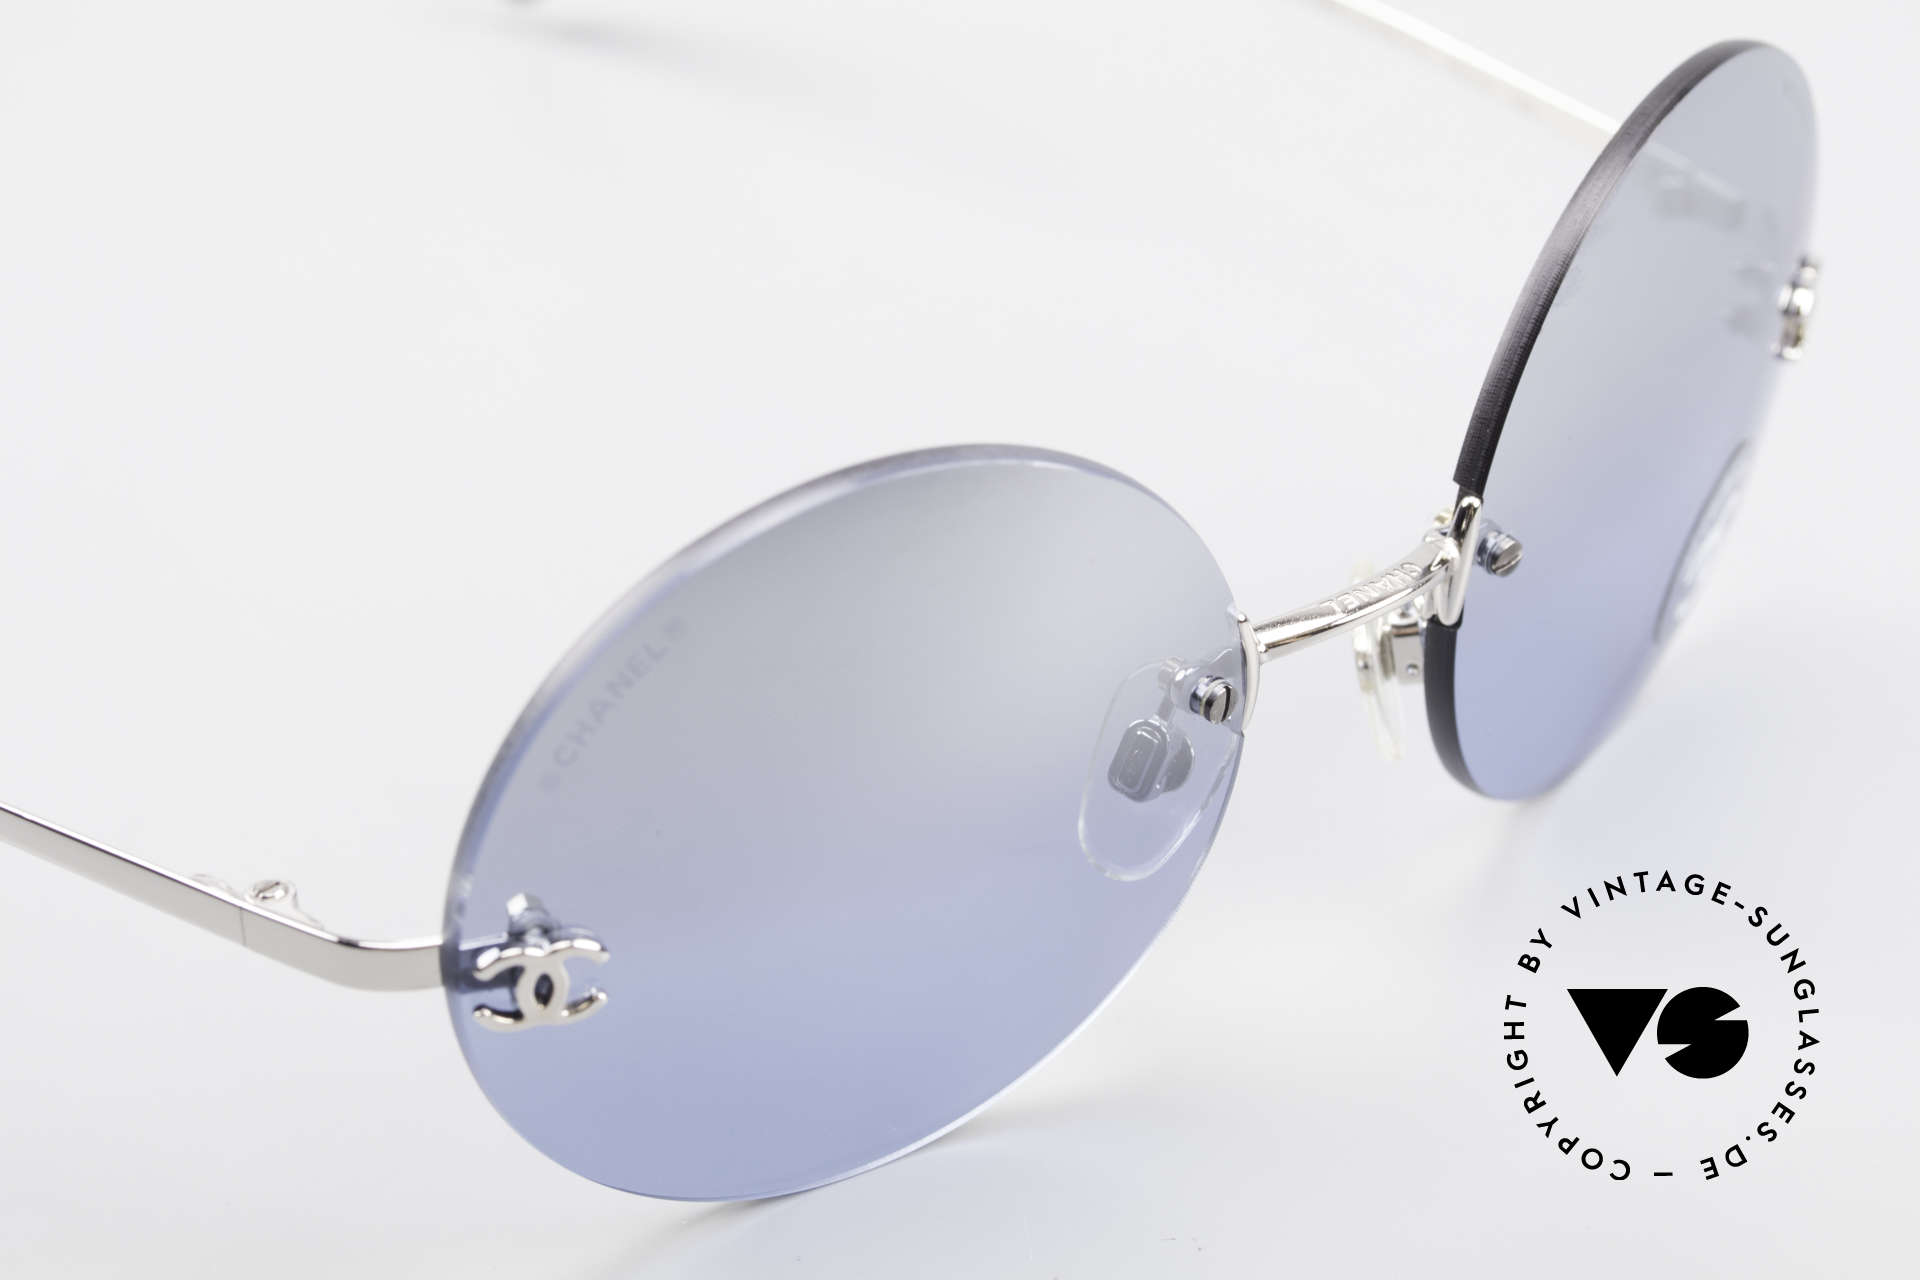 Chanel 4056 Round Luxury Shades Rimless, unworn designer shades (incl. original case by Chanel), Made for Men and Women